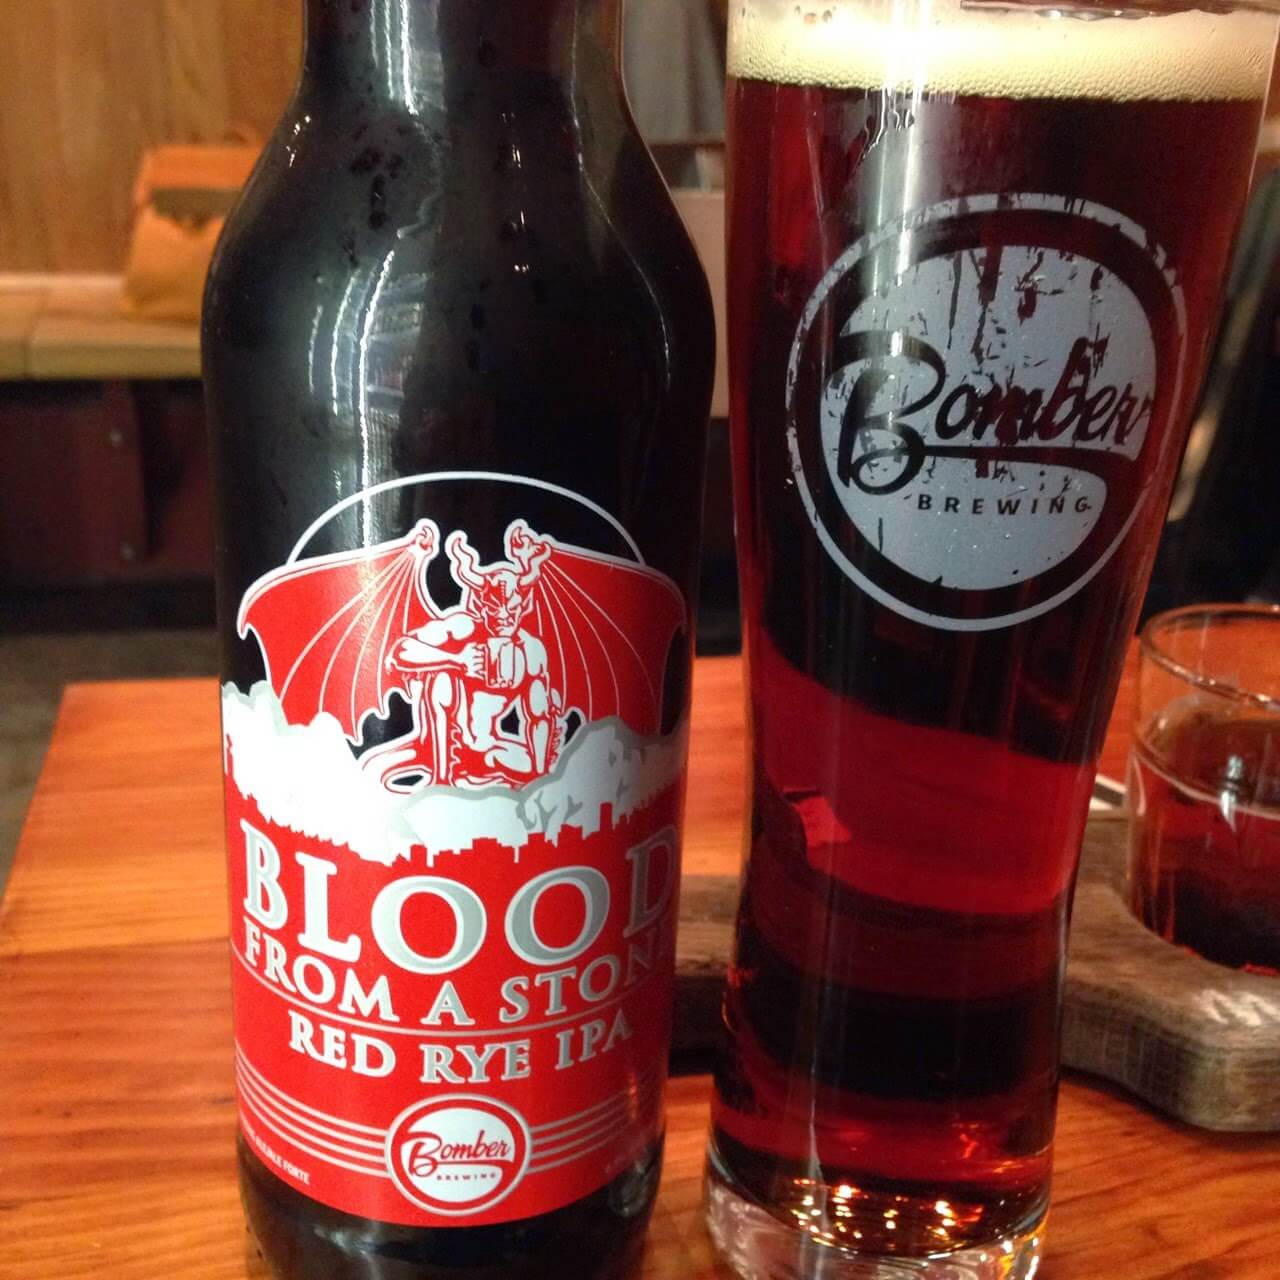 Bomber Blood From a Stone Red Rye IPA